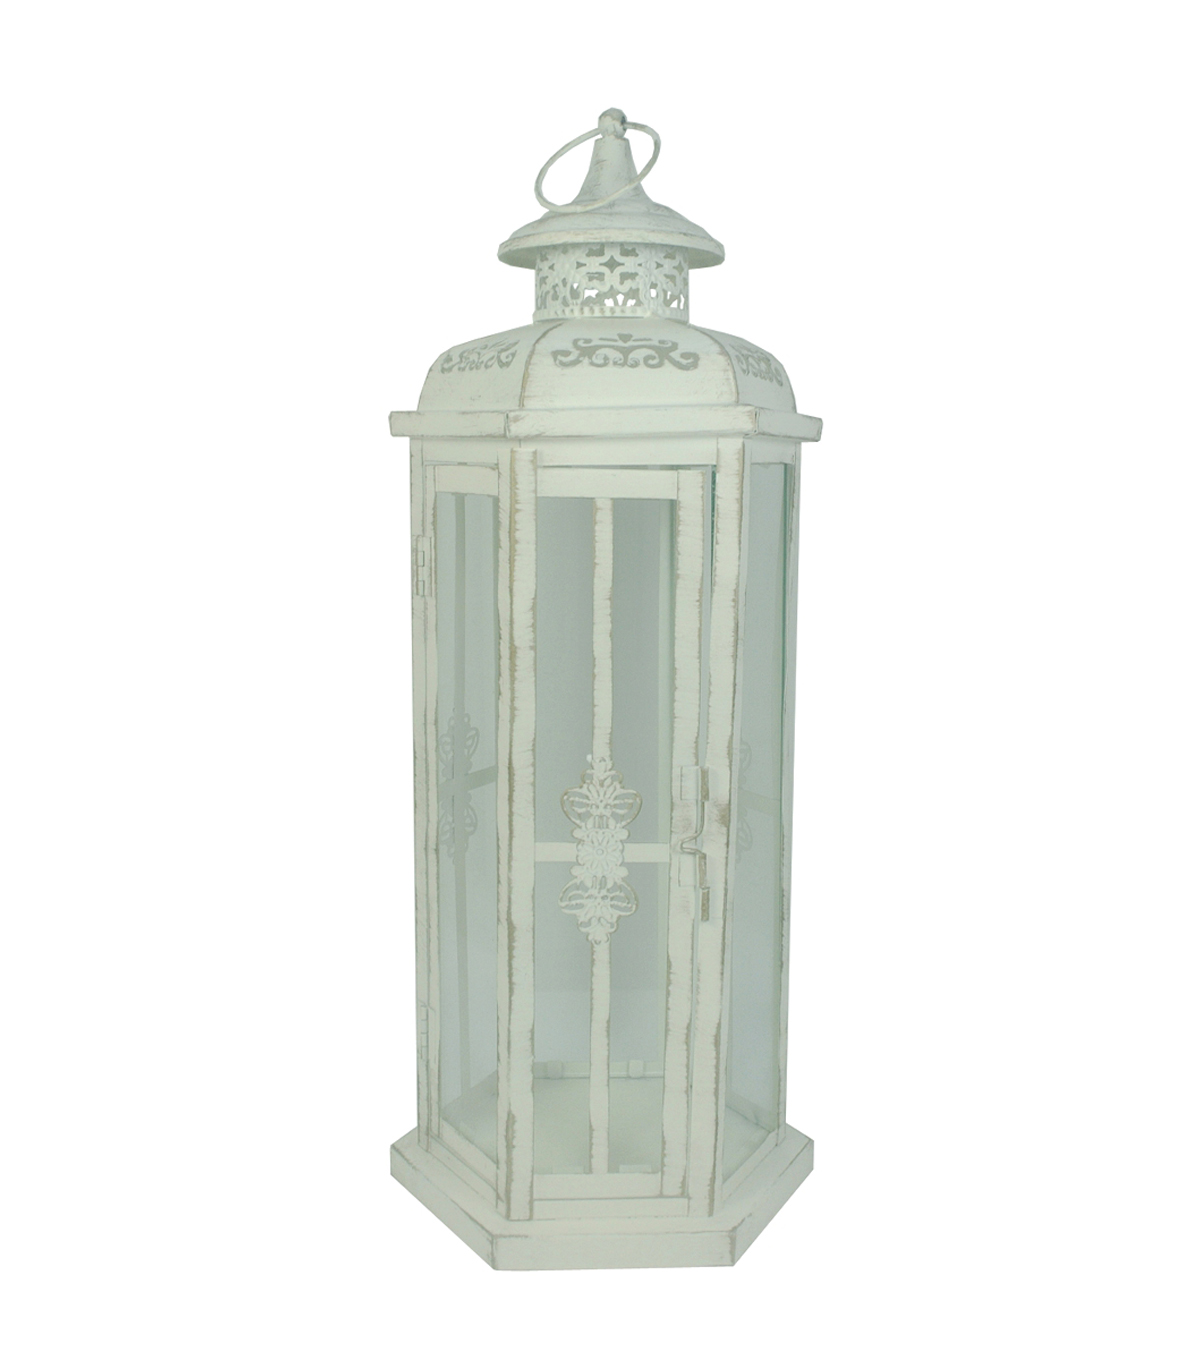 Hudson 43 Candle & Light Collection Distressed Metal Lantern White Lg